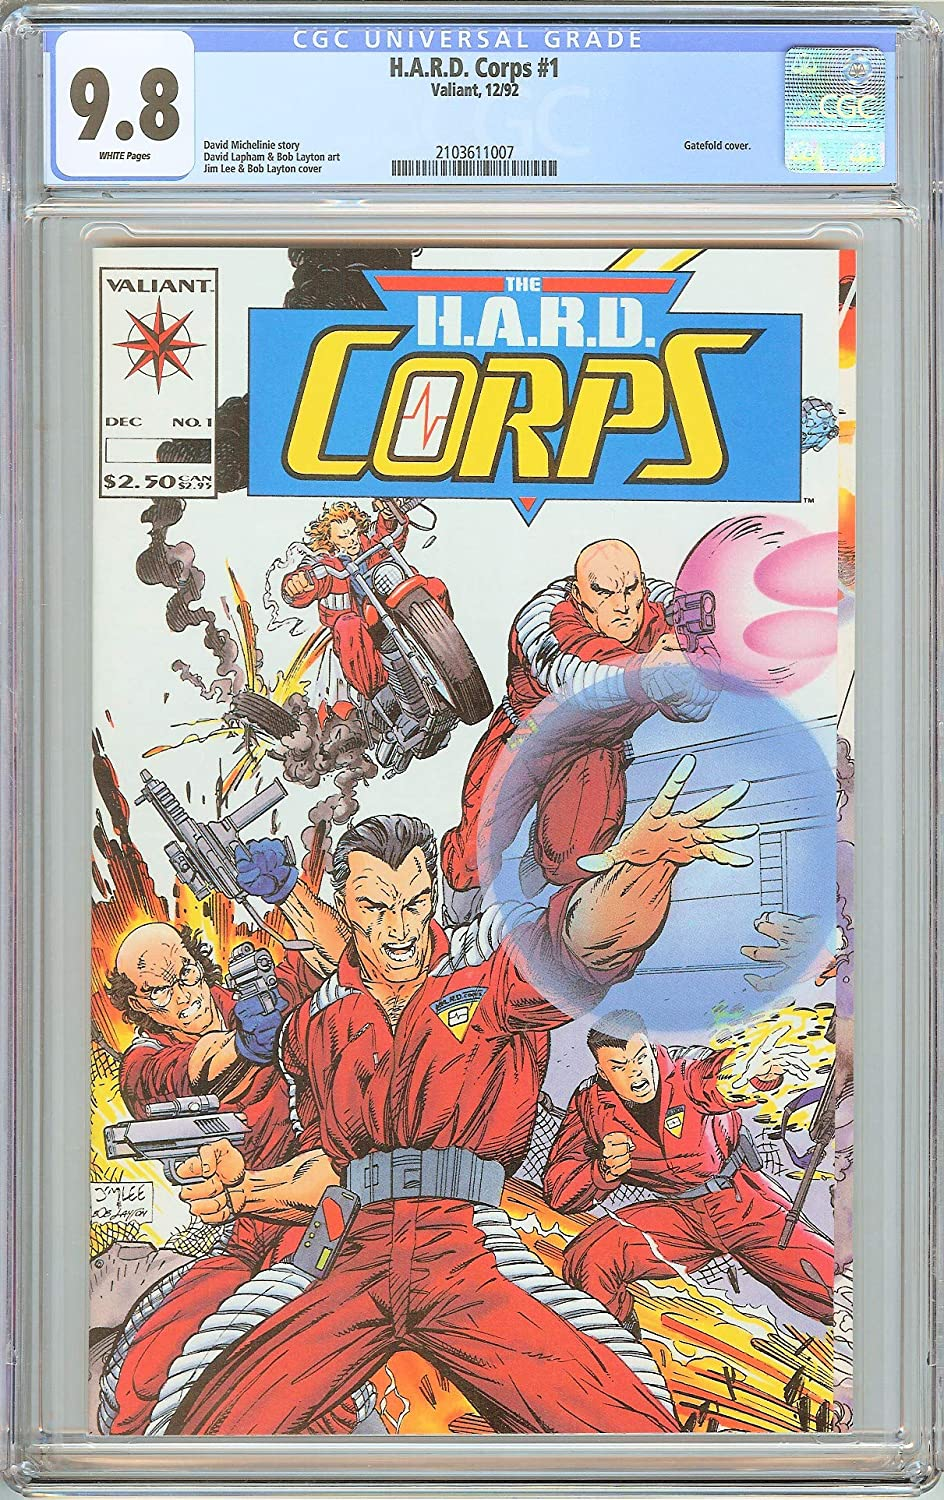 H.A.R.D. Corps #1 Spring new work one after another CGC 9.8 White Gatefold c 1992 2103611007 mart Pages